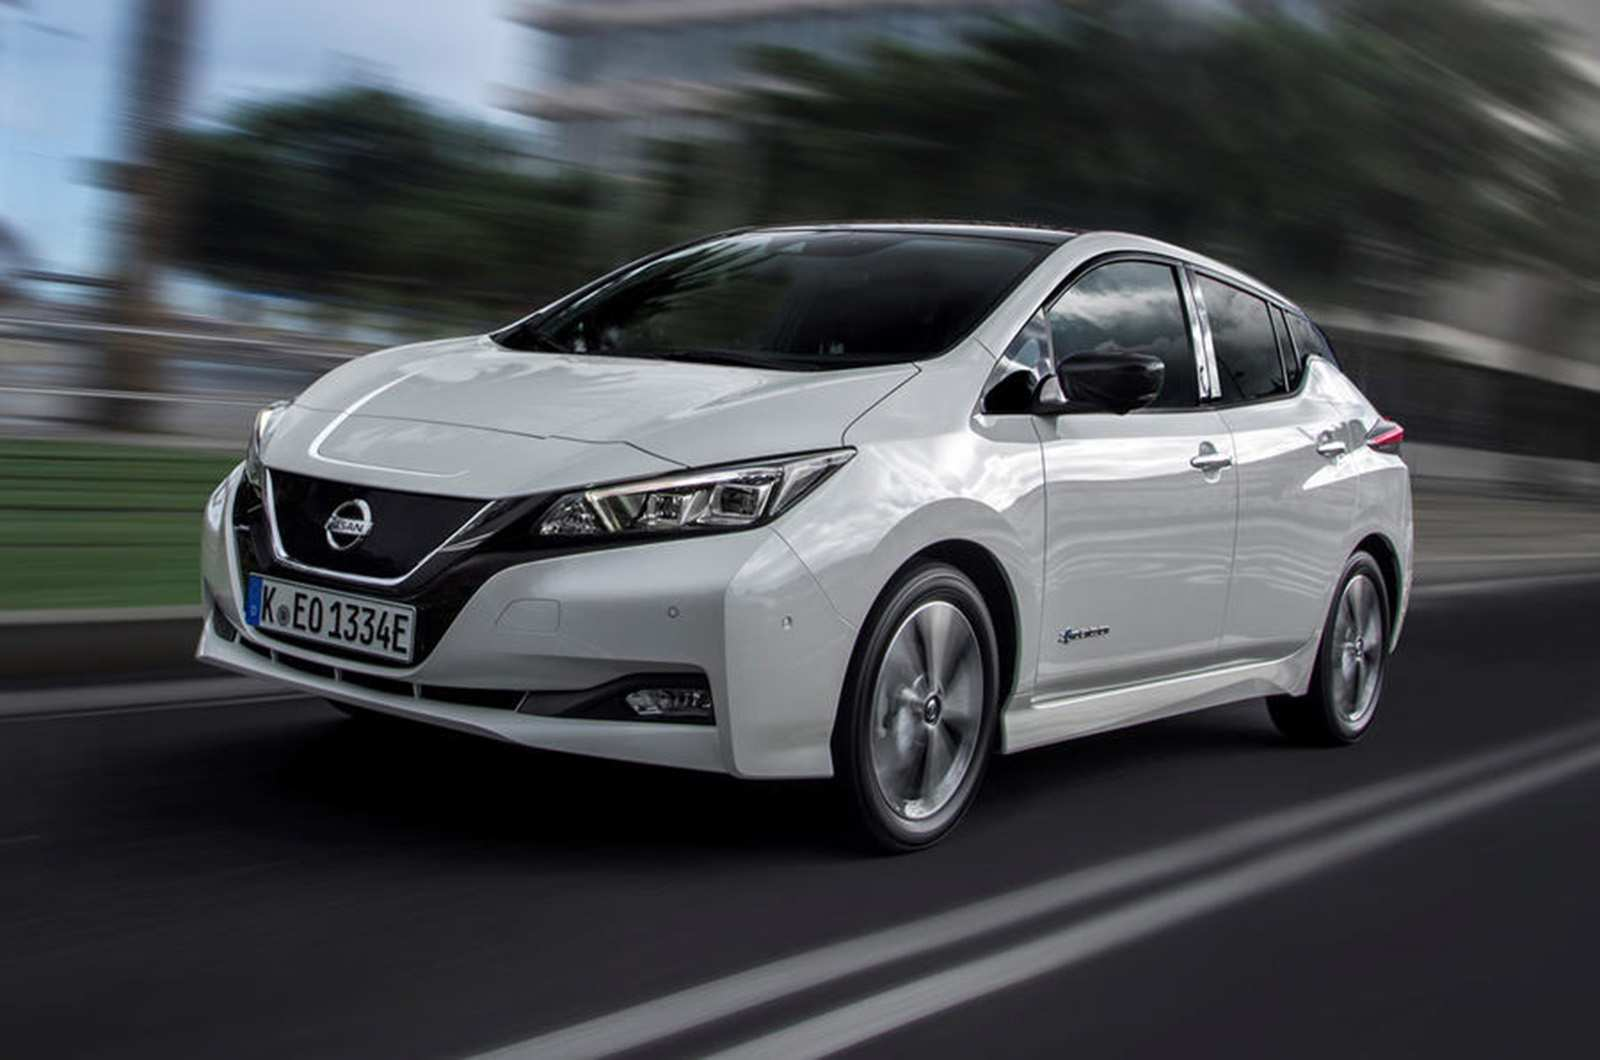 56 Best Review Nissan Leaf 2020 Exterior Date Uk Release Date for Nissan Leaf 2020 Exterior Date Uk